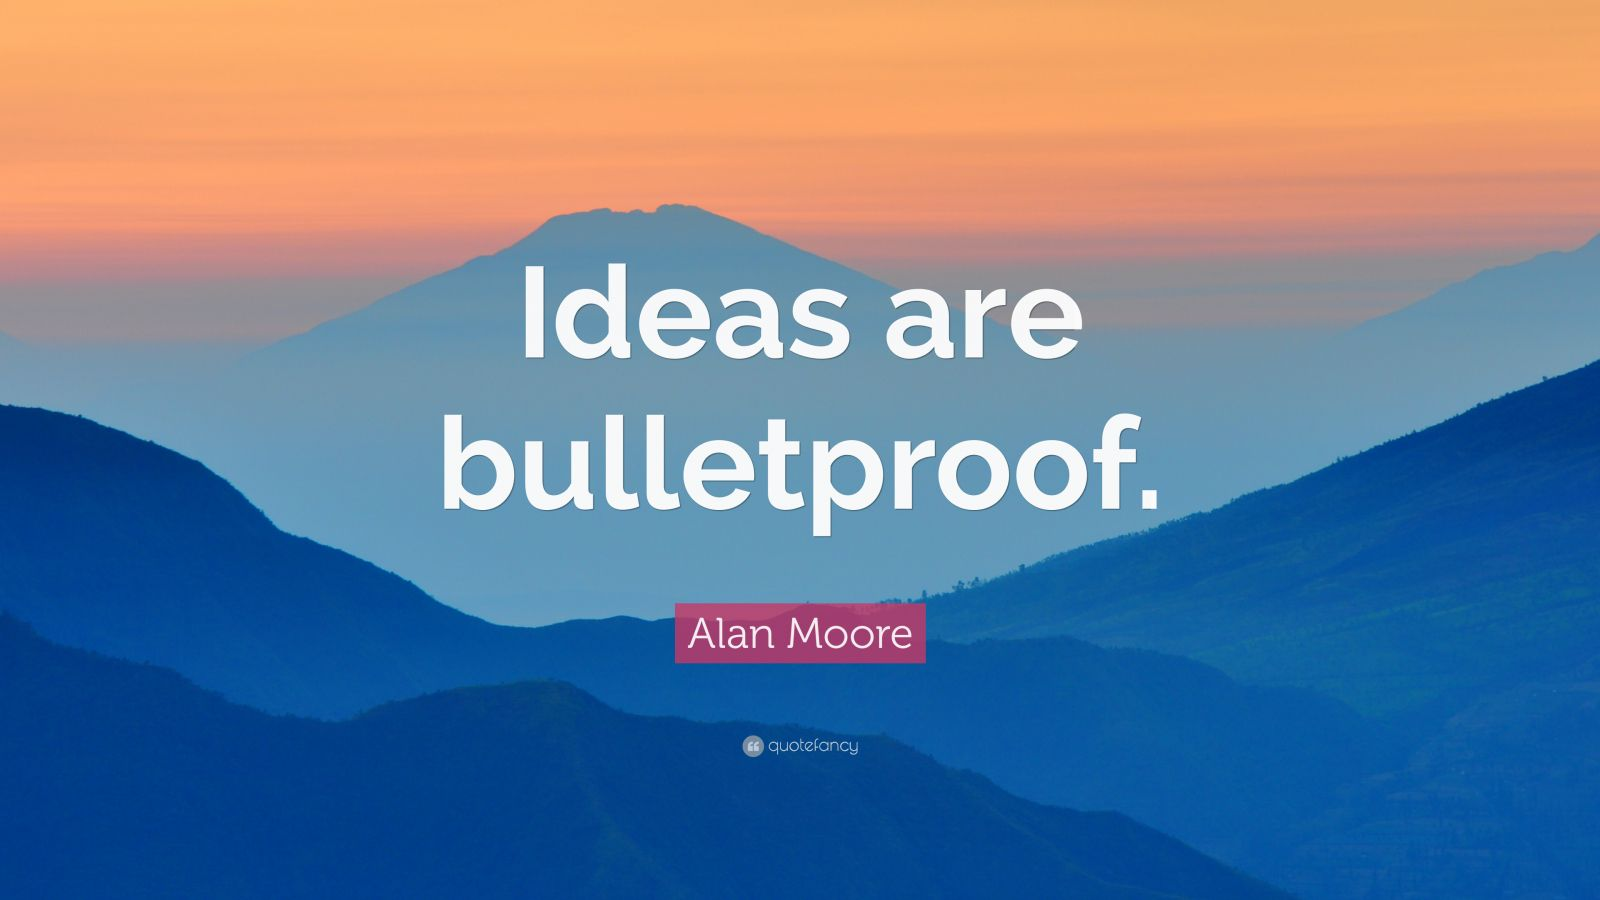 ideas are bulletproof Want to see art related to ideasarebulletproof scroll through inspiring examples  of artwork on deviantart and find inspiration from our network of talented artists.